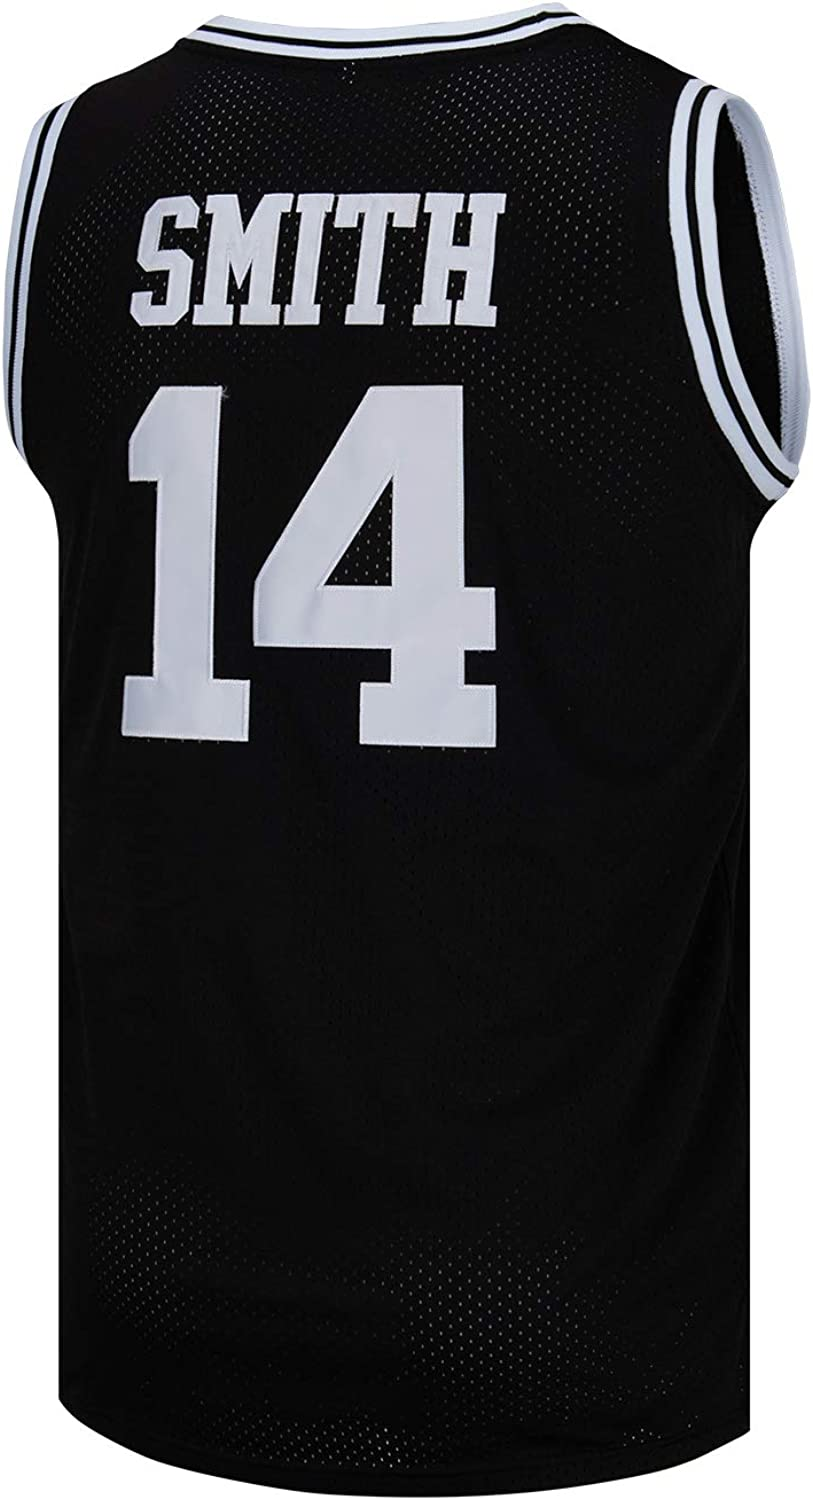 SPPOTY Mens #14 Basketball Jersey 90S Hip Hop Clothing for Party Black/Yellow/Green: Clothing